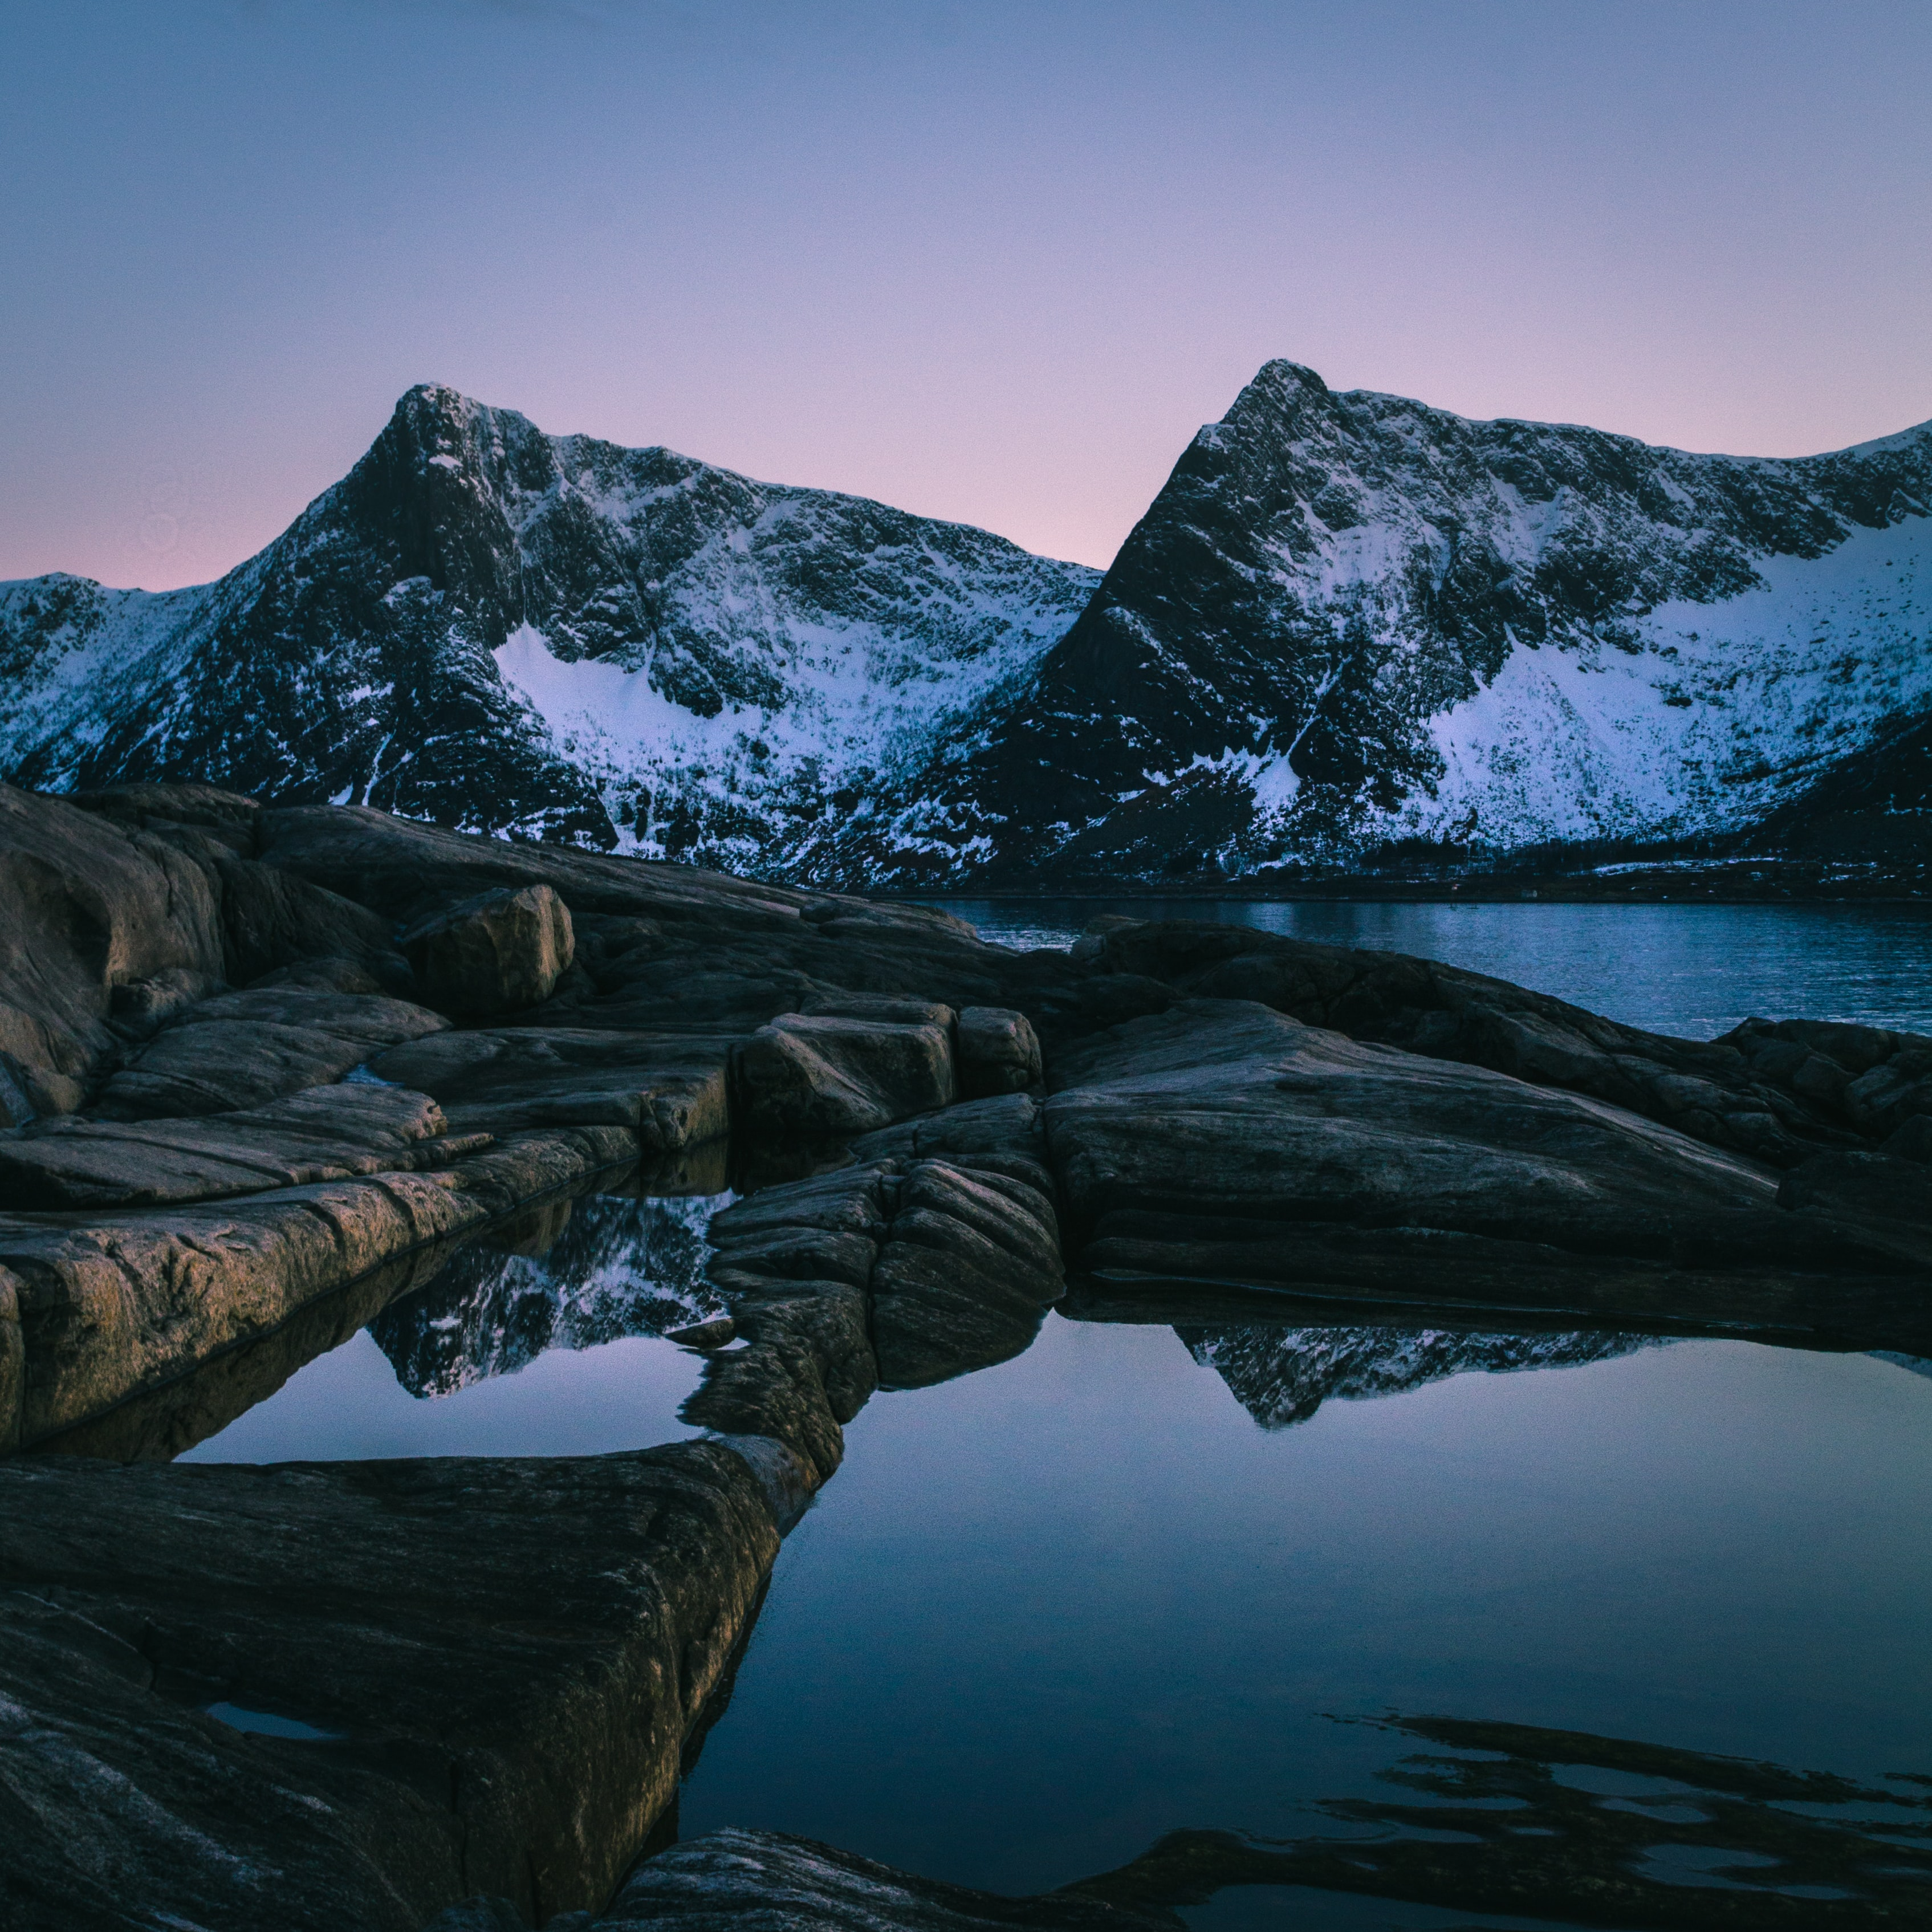 landscape photography of mountain beside body of water